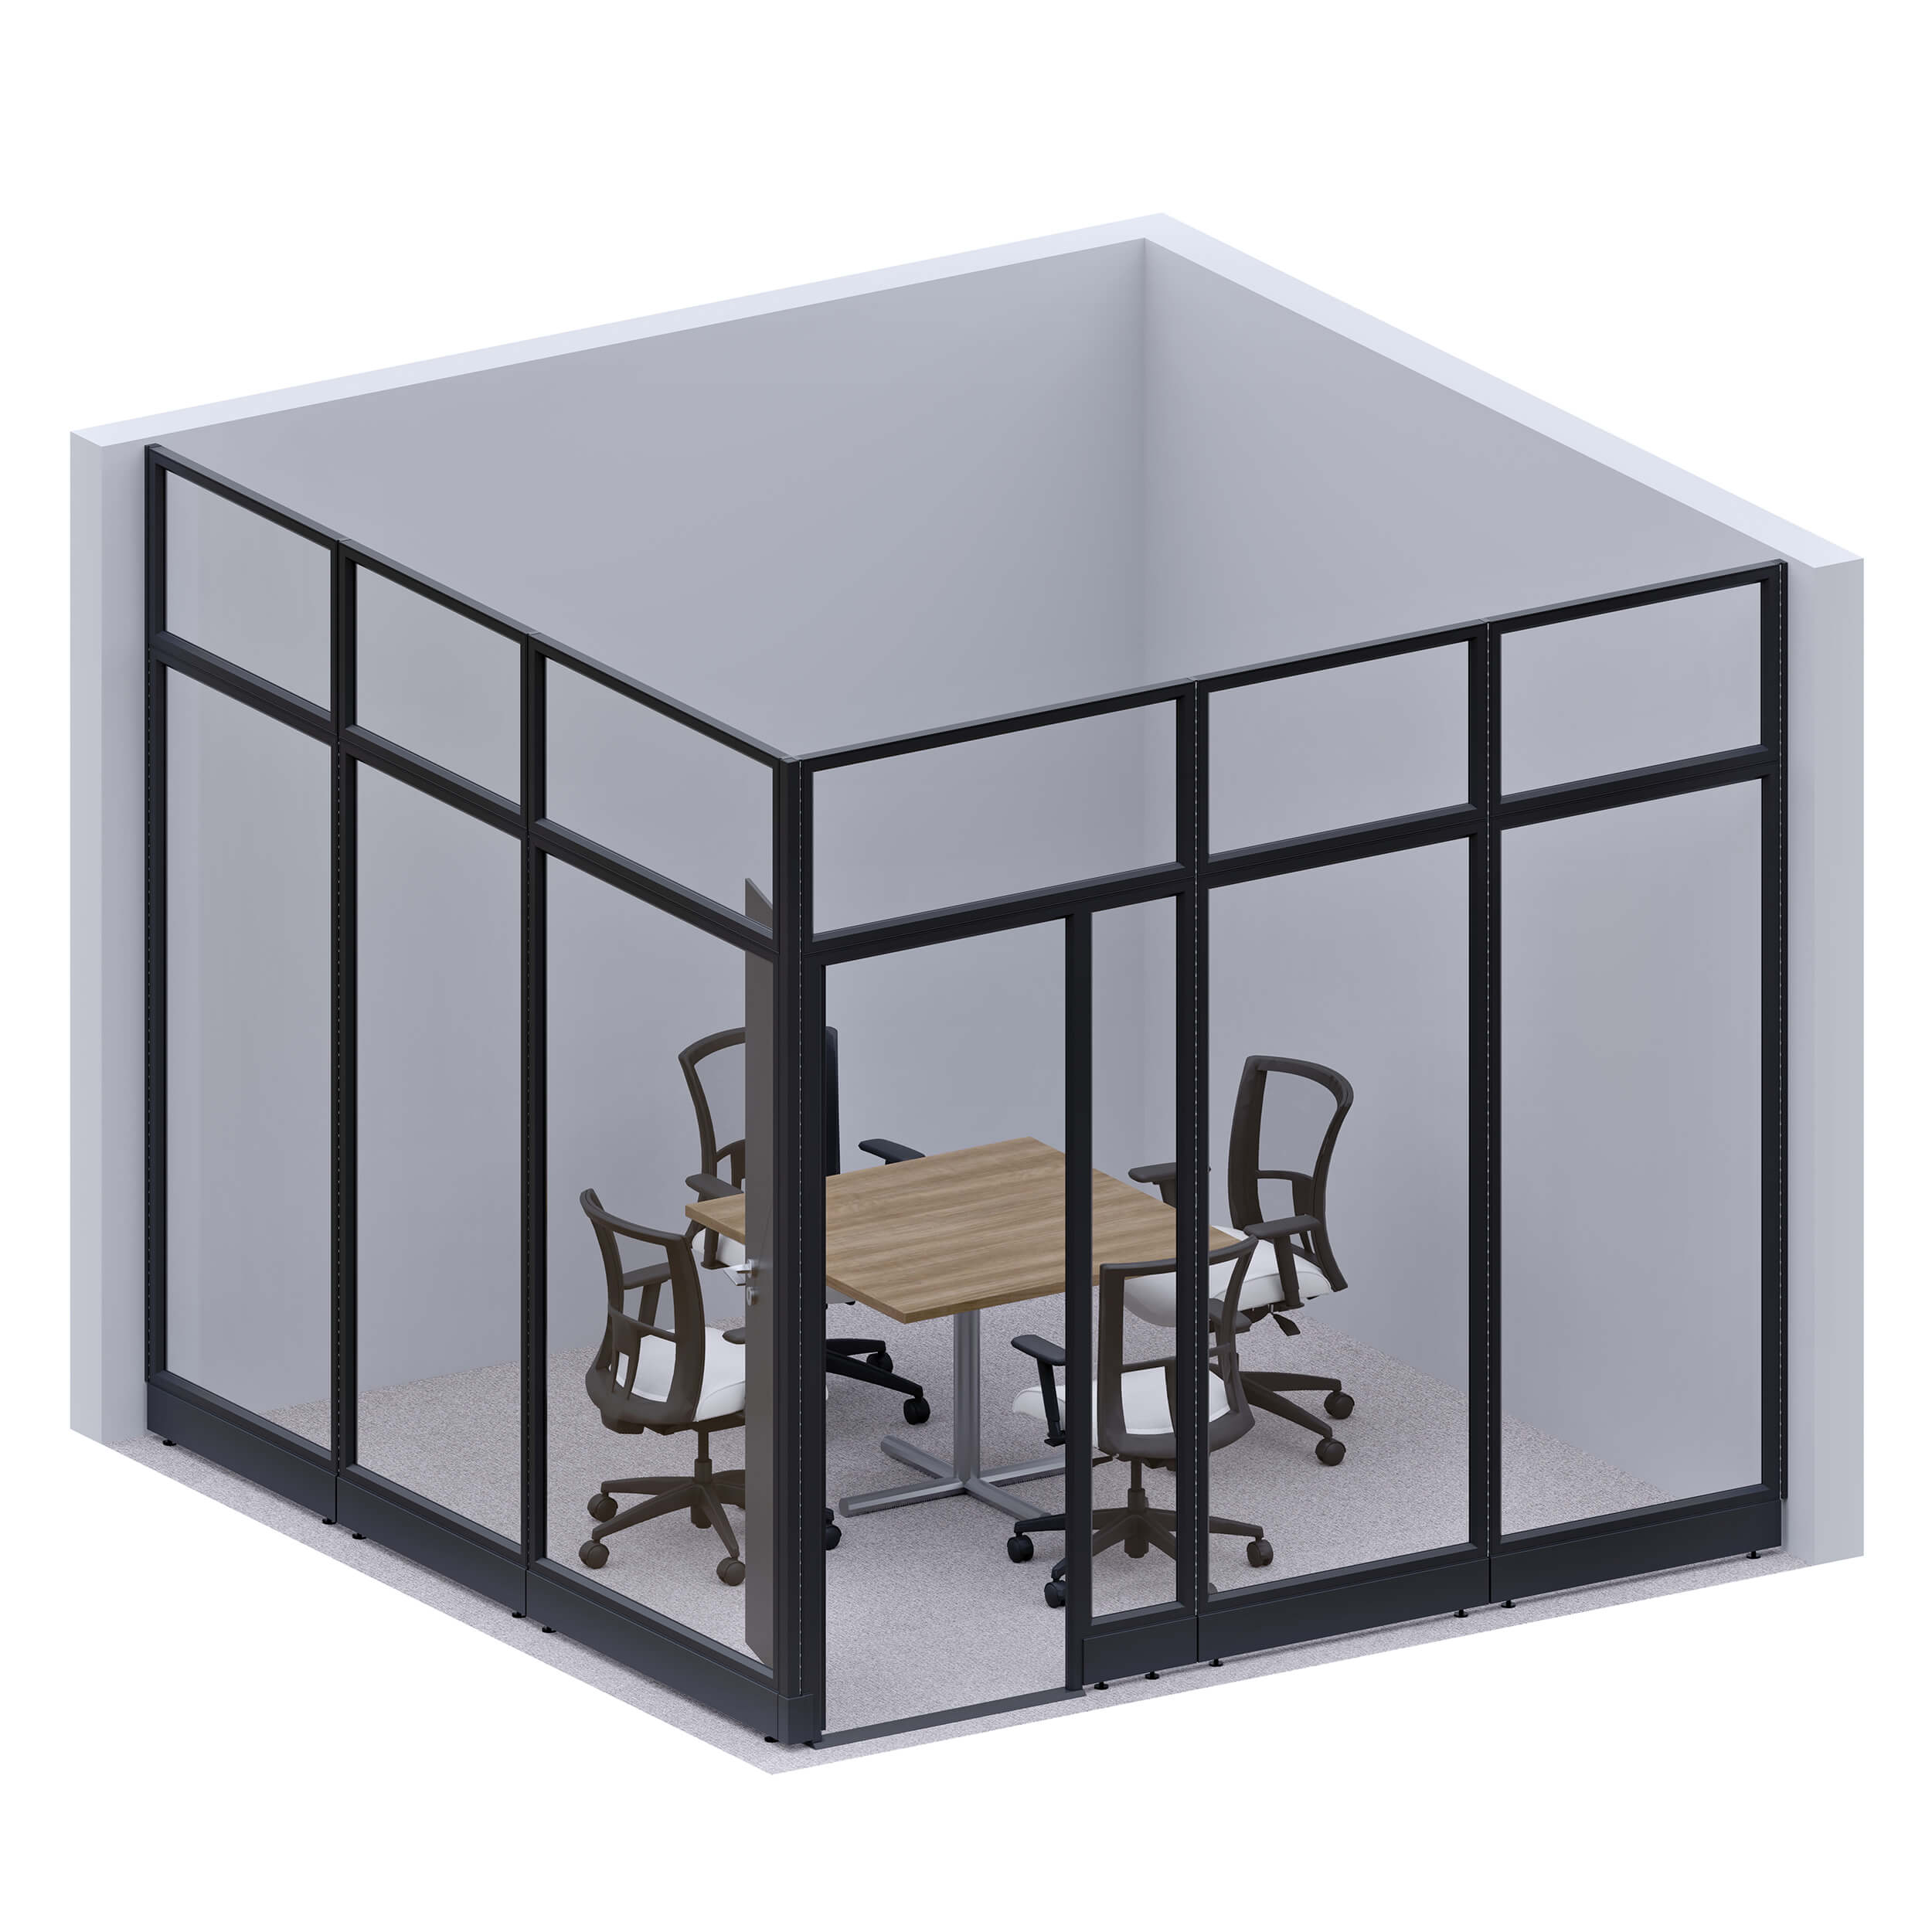 office-walls-glass-wall-conference-room-107h-l-shape.jpg